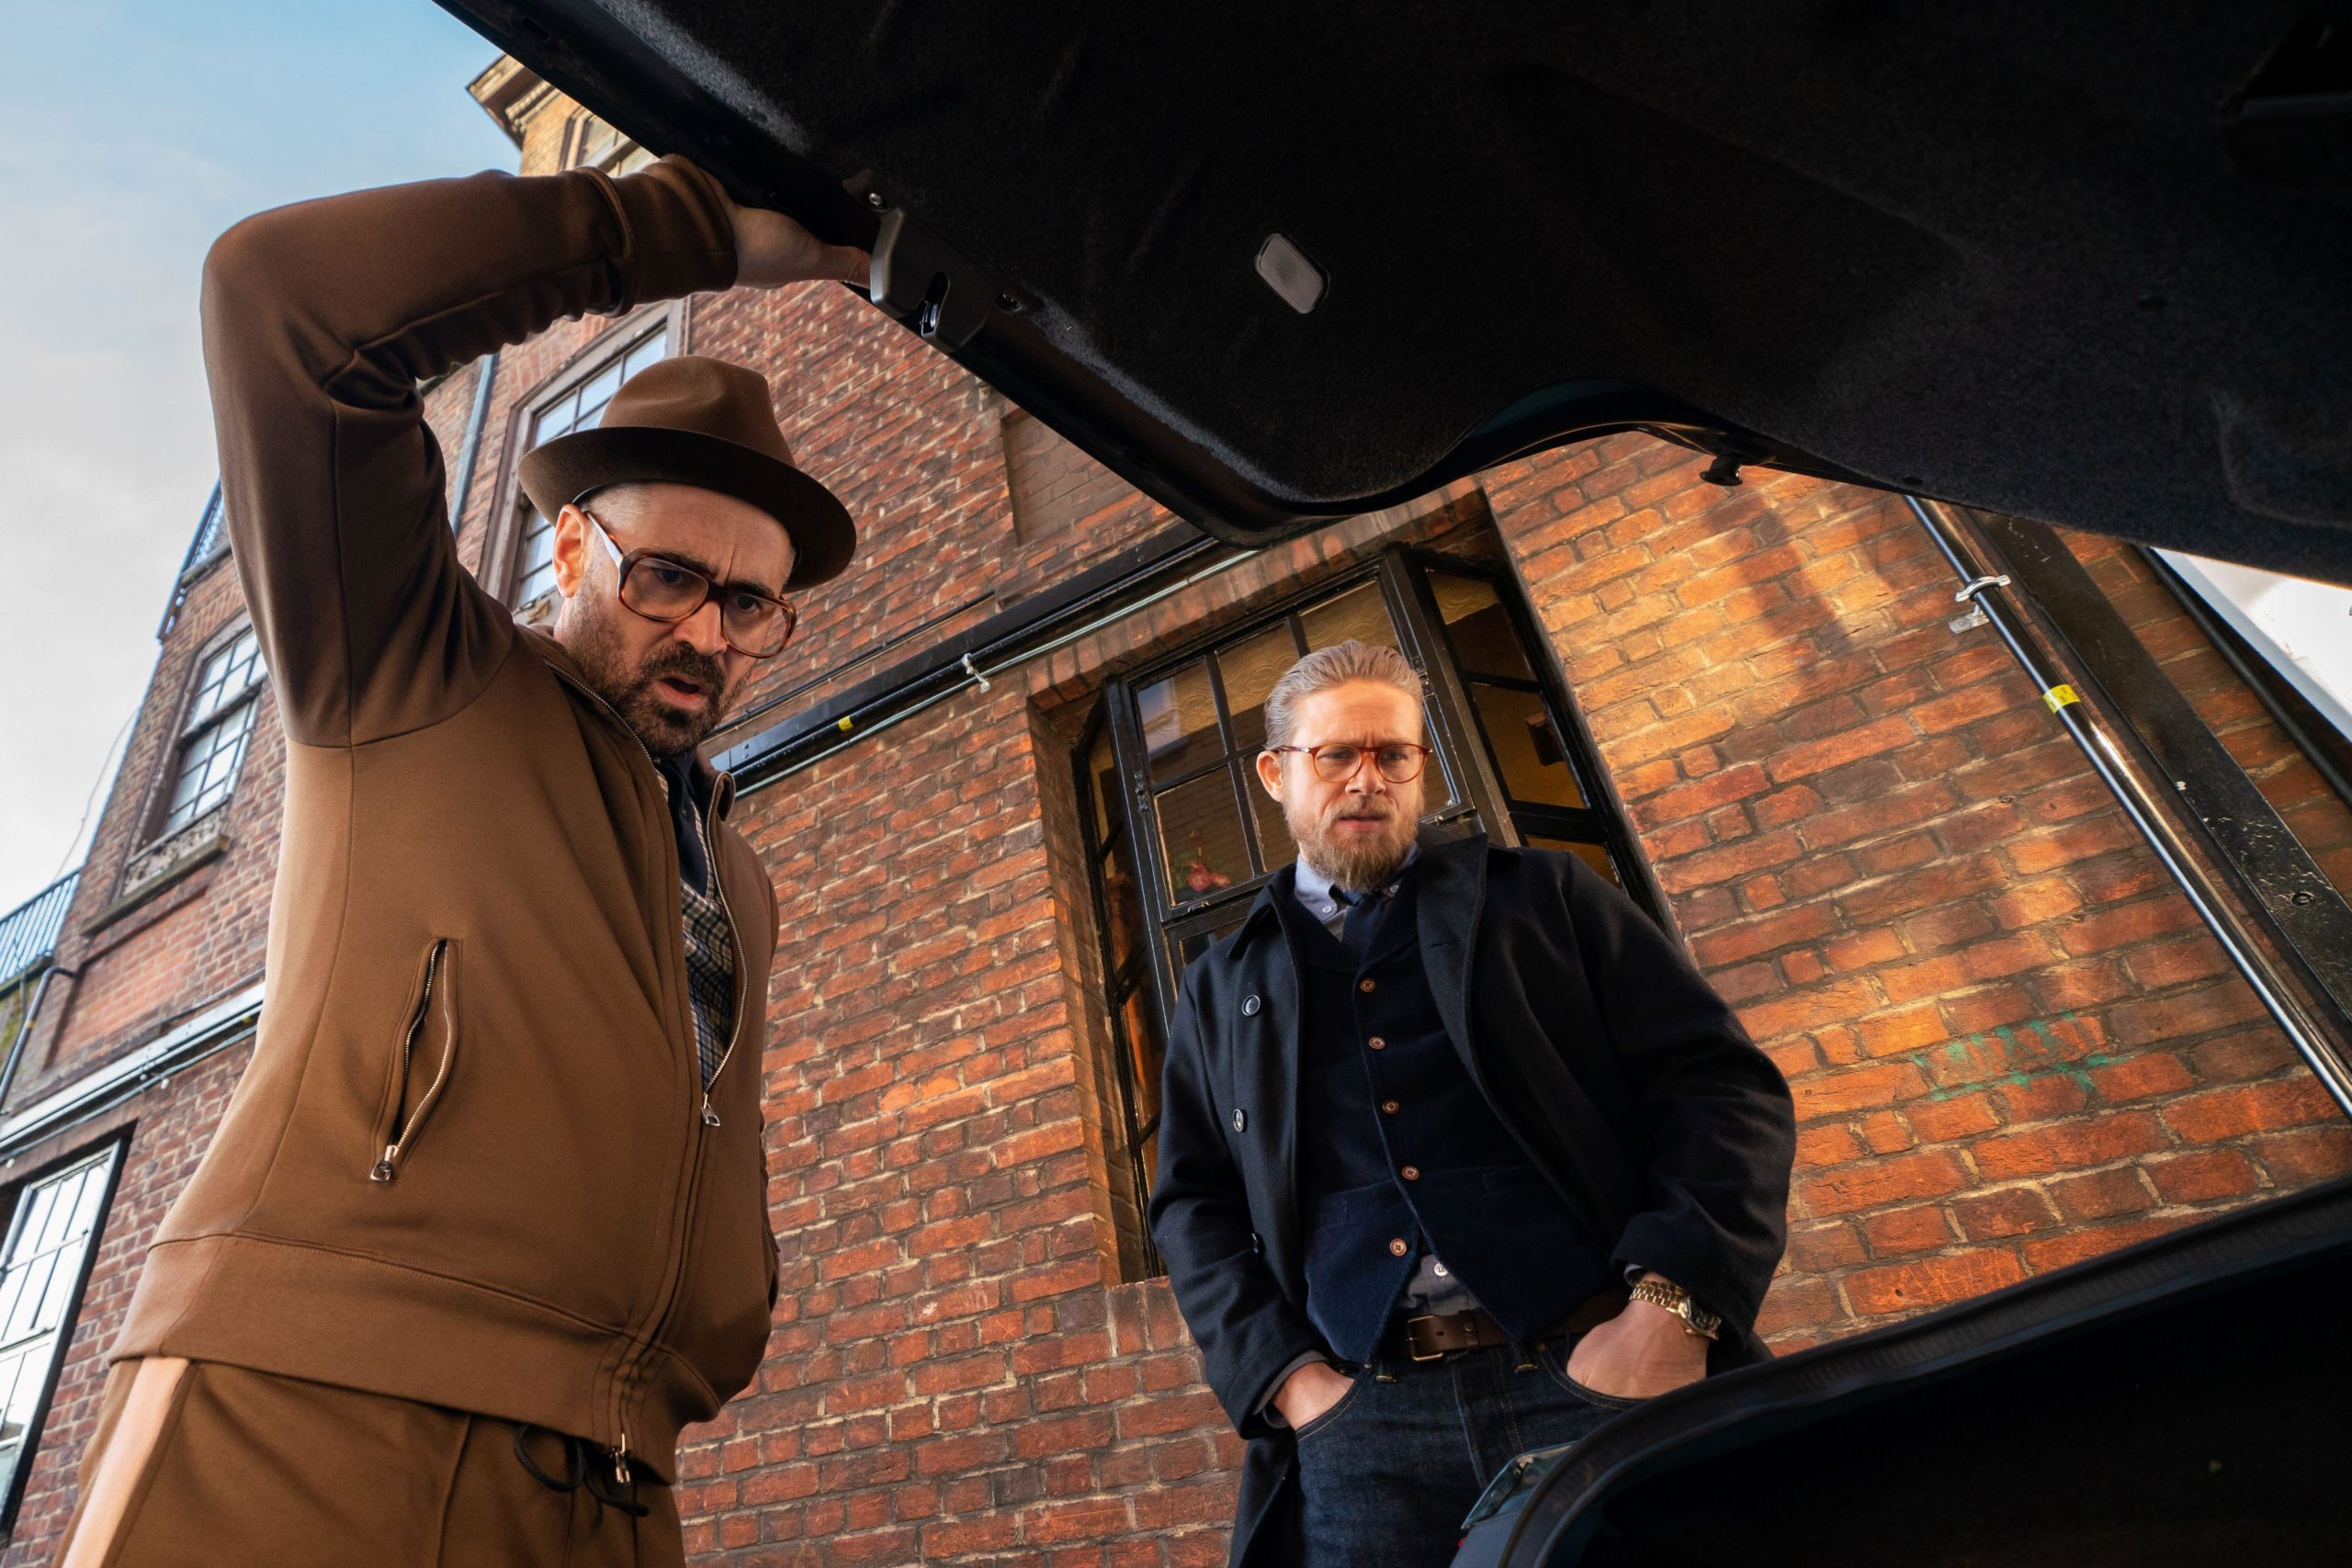 Movie review: 'The Gentlemen' brings out the richness of Guy Ritchie's moviemaking style